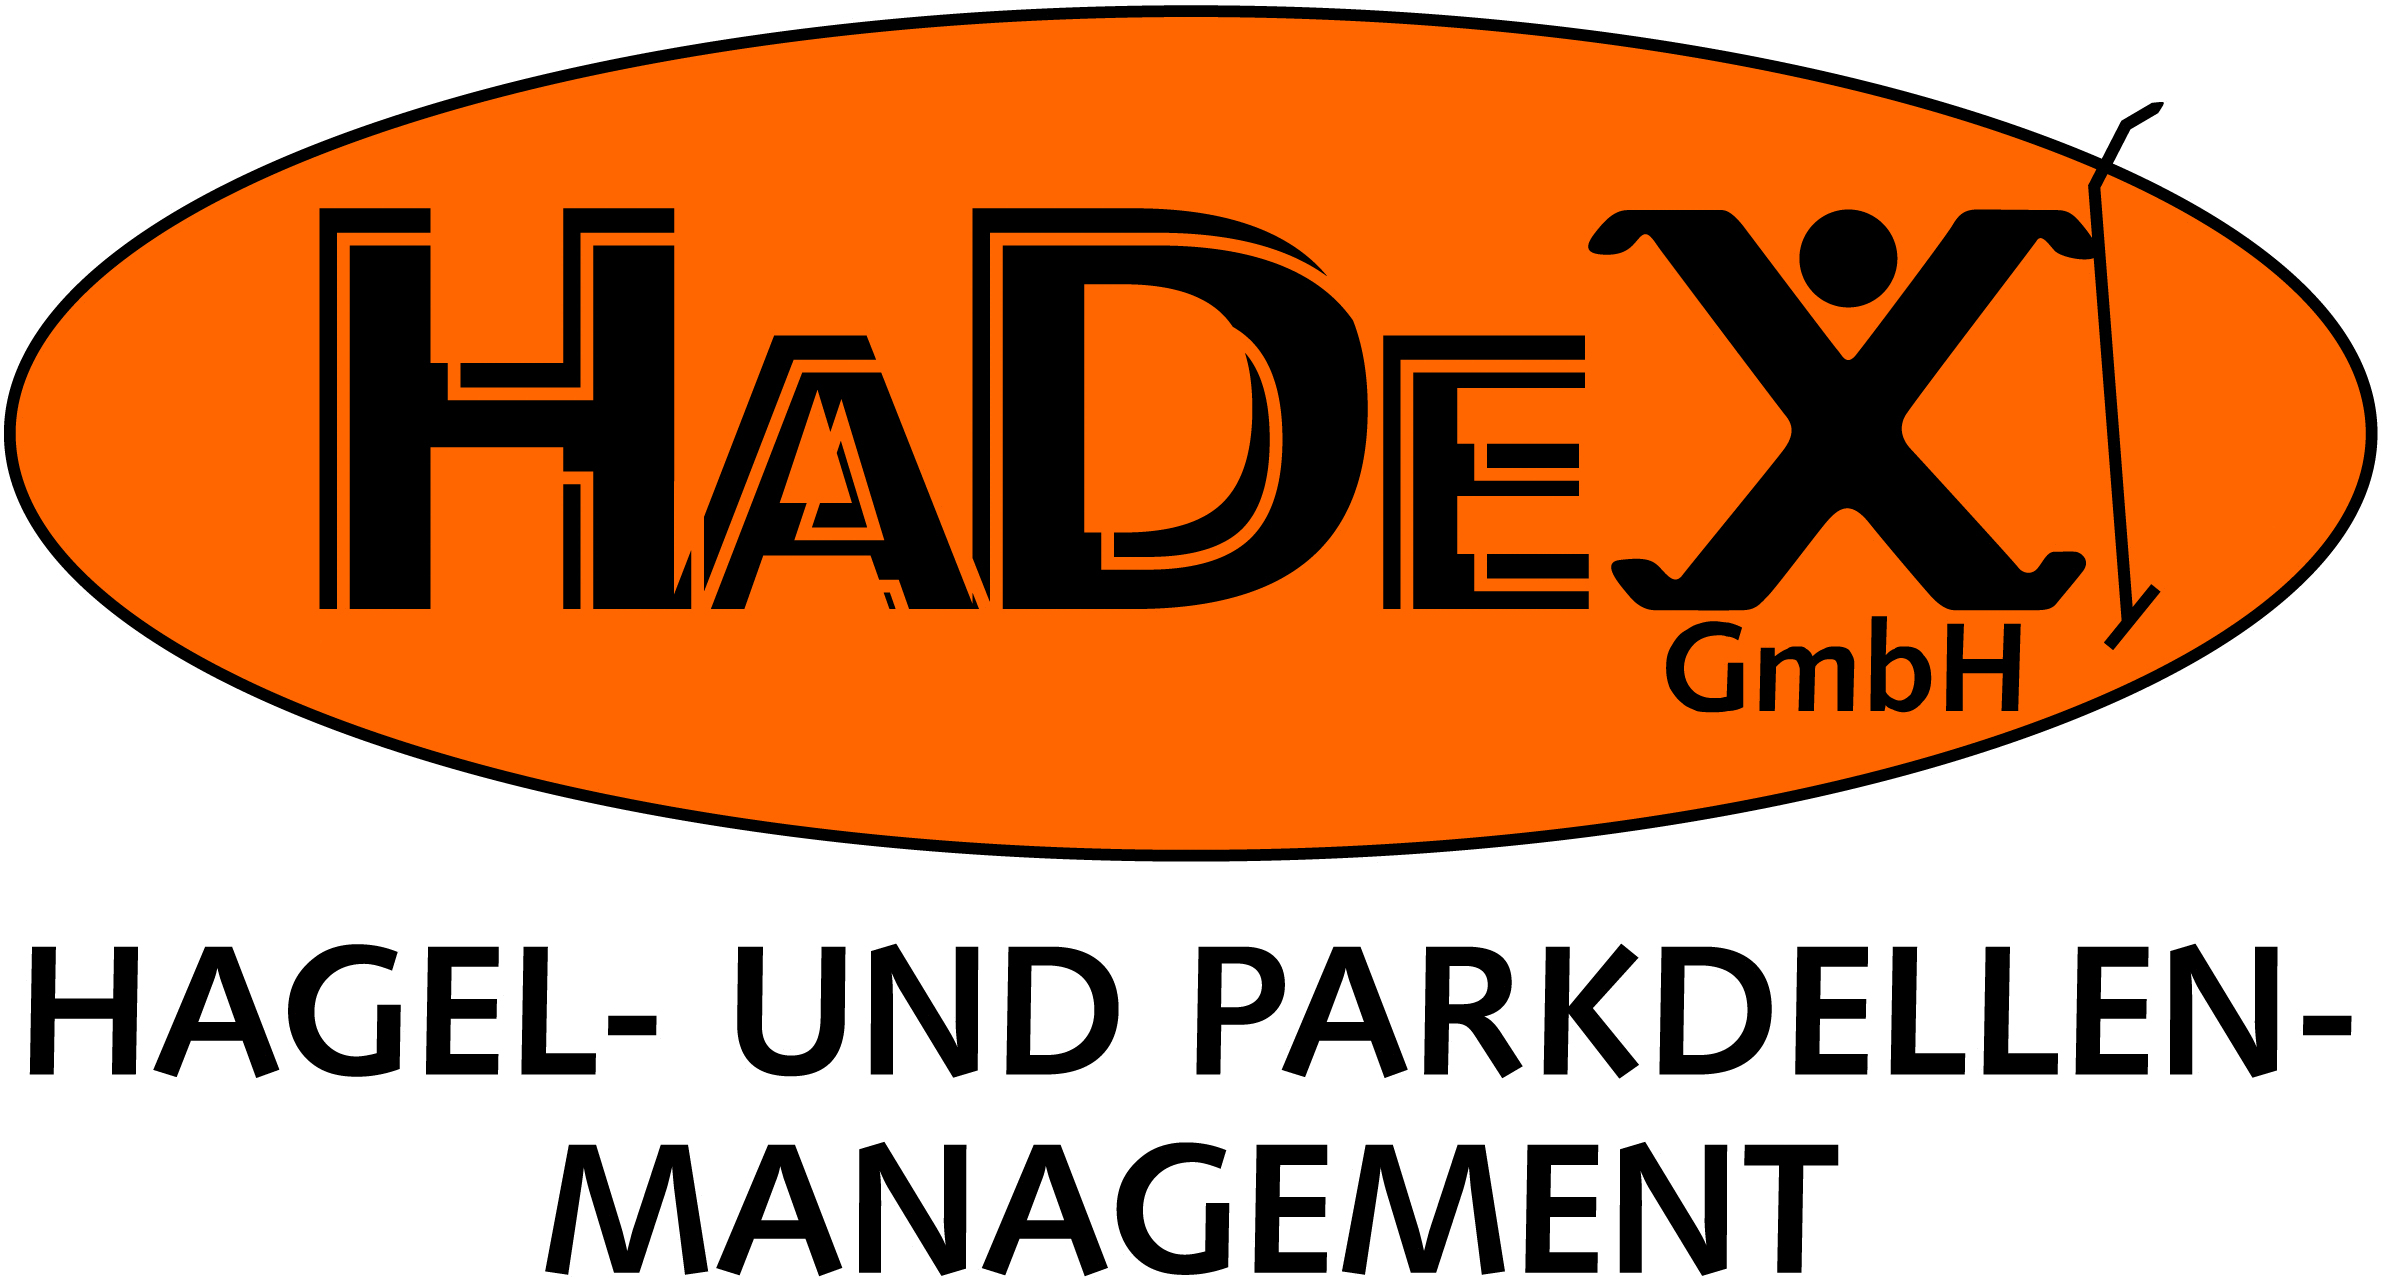 HaDeX24.shop - PDR-Tools